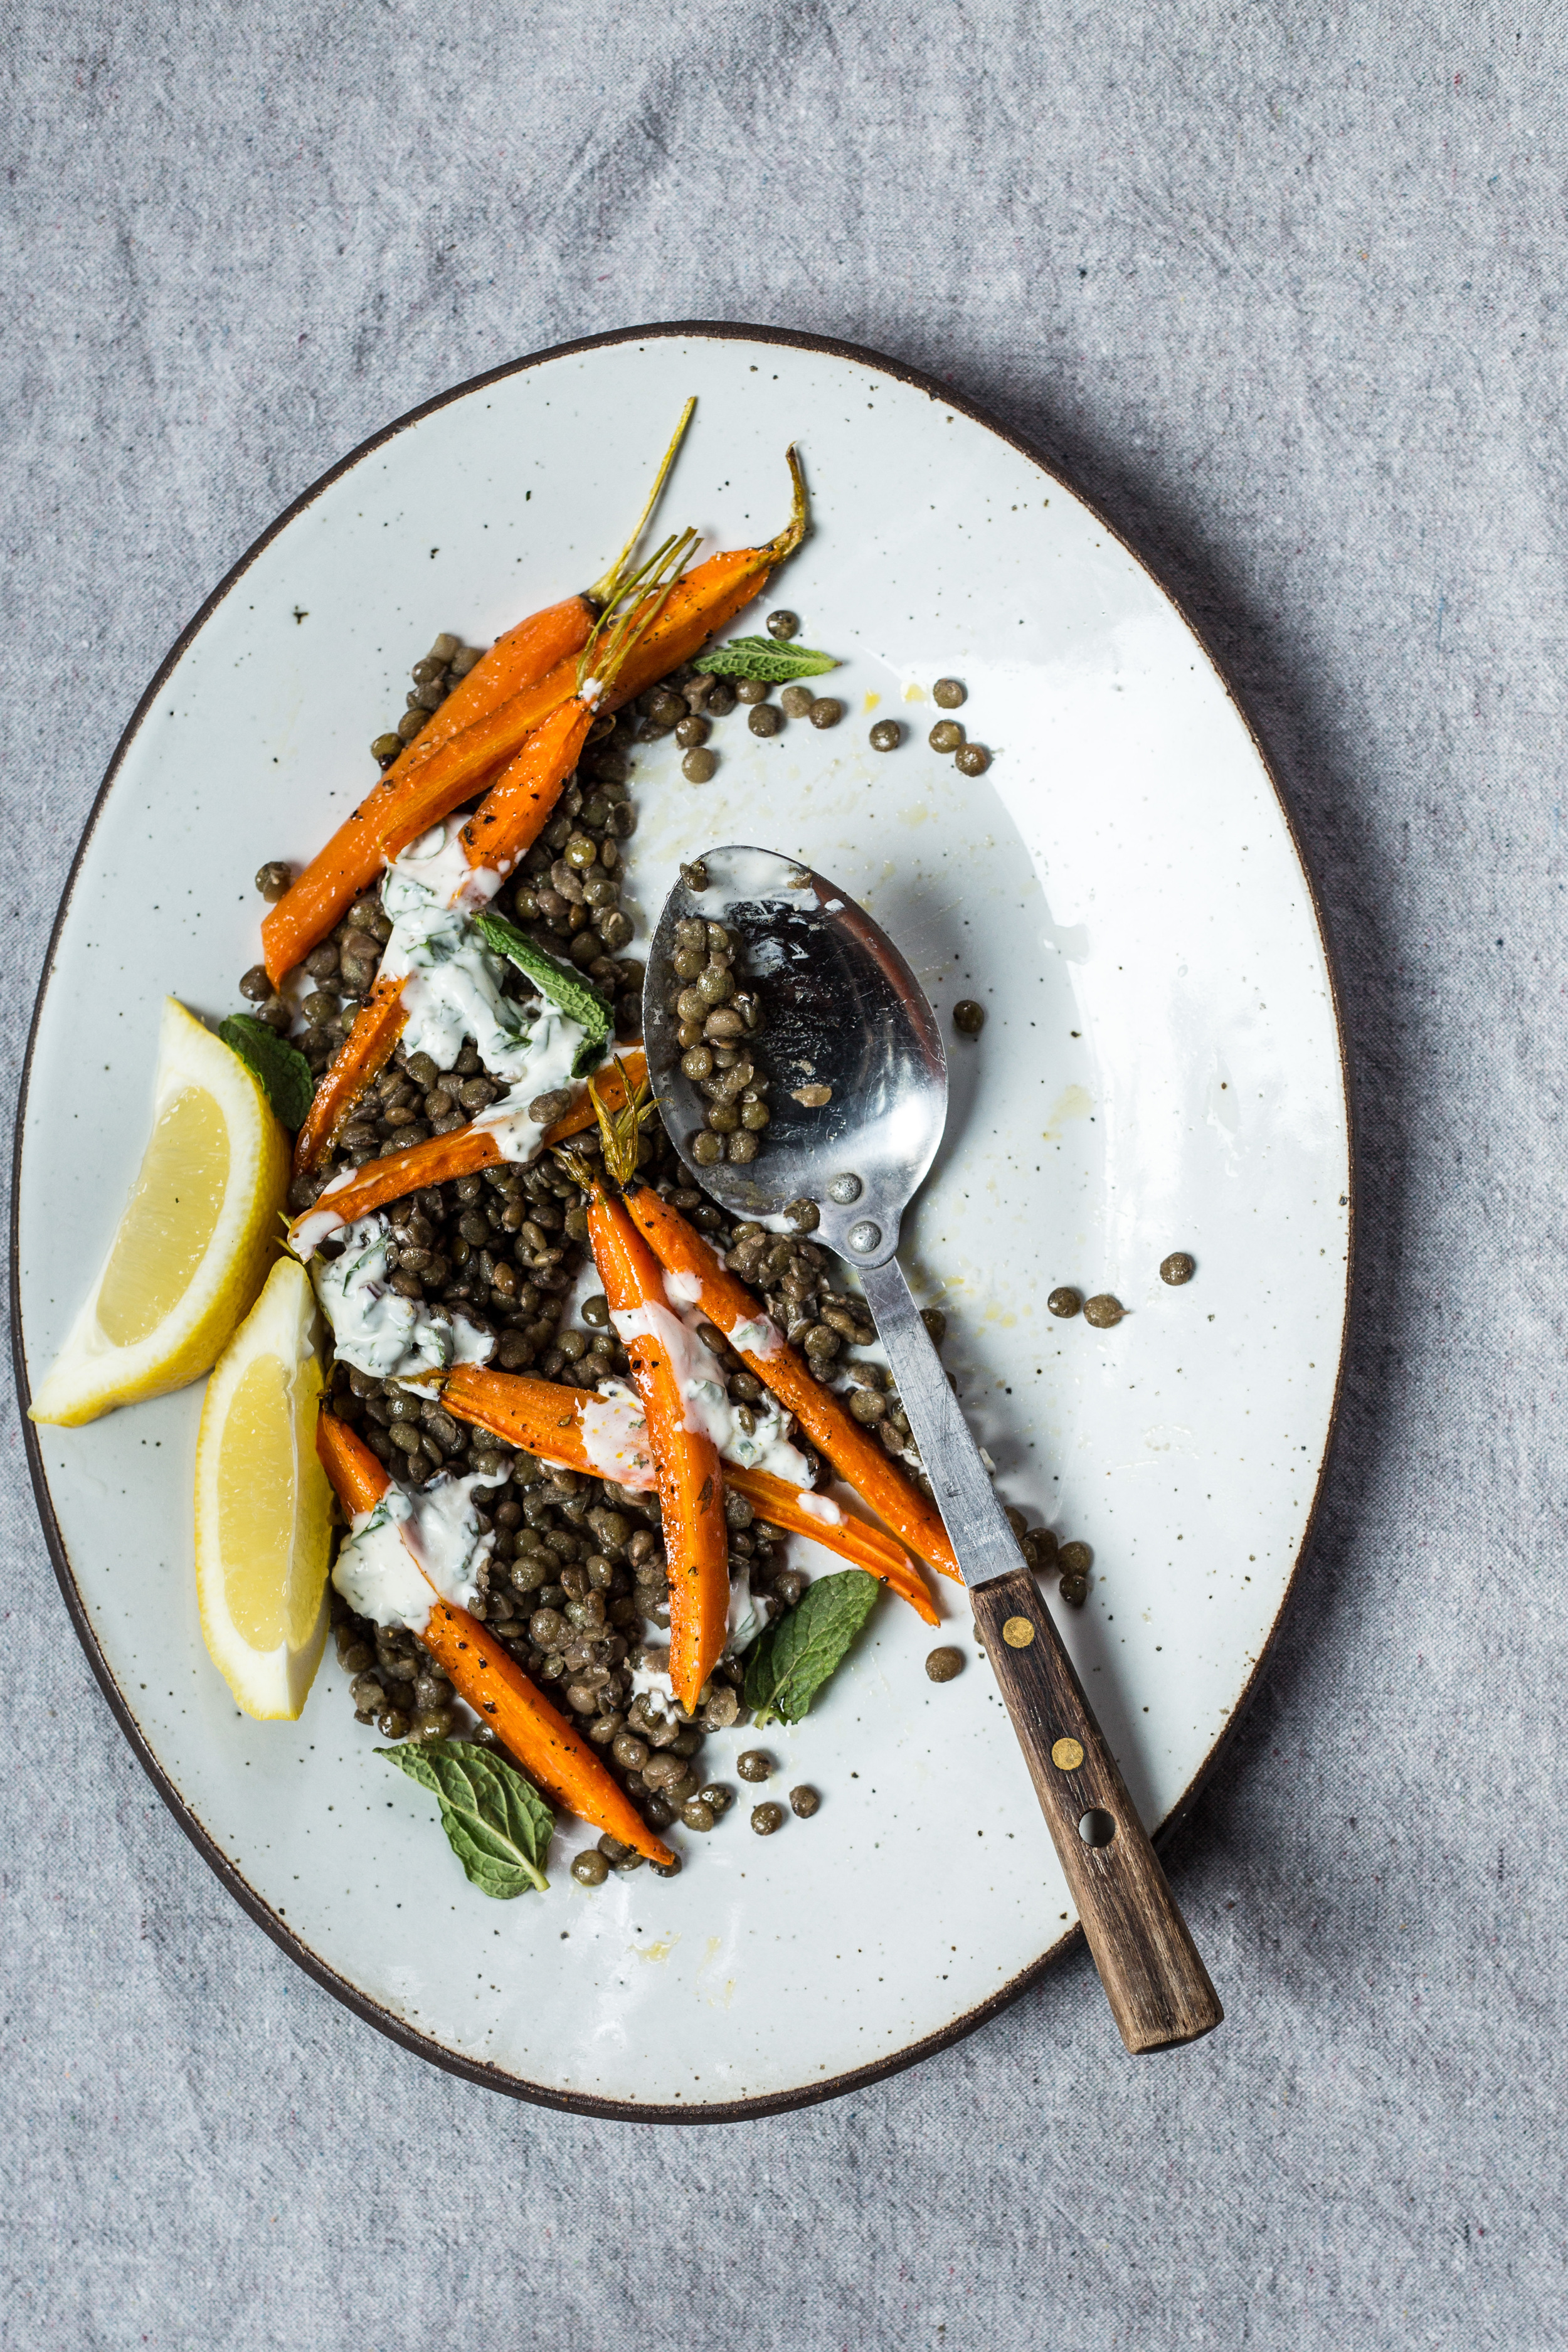 ROASTED CARROTS WITH LENTILS + HERBED YOGURT